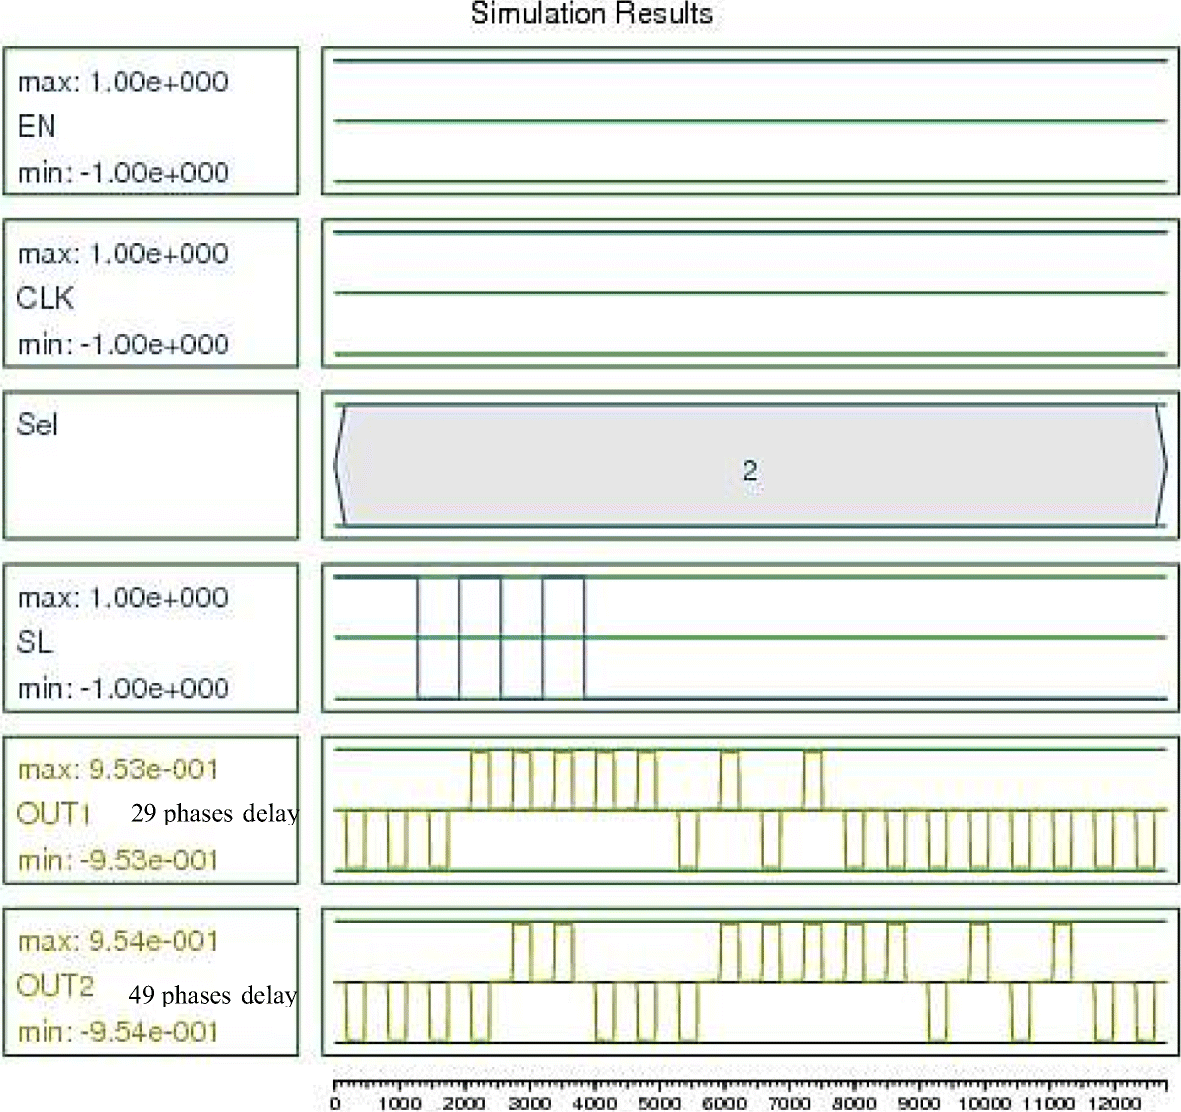 Fault Tolerant Design Of A Shift Register At The Nanoscale Based On Figure 8 4x1 Multiplexer With 2x4 Decoder Selector Block Diagram Fig 13